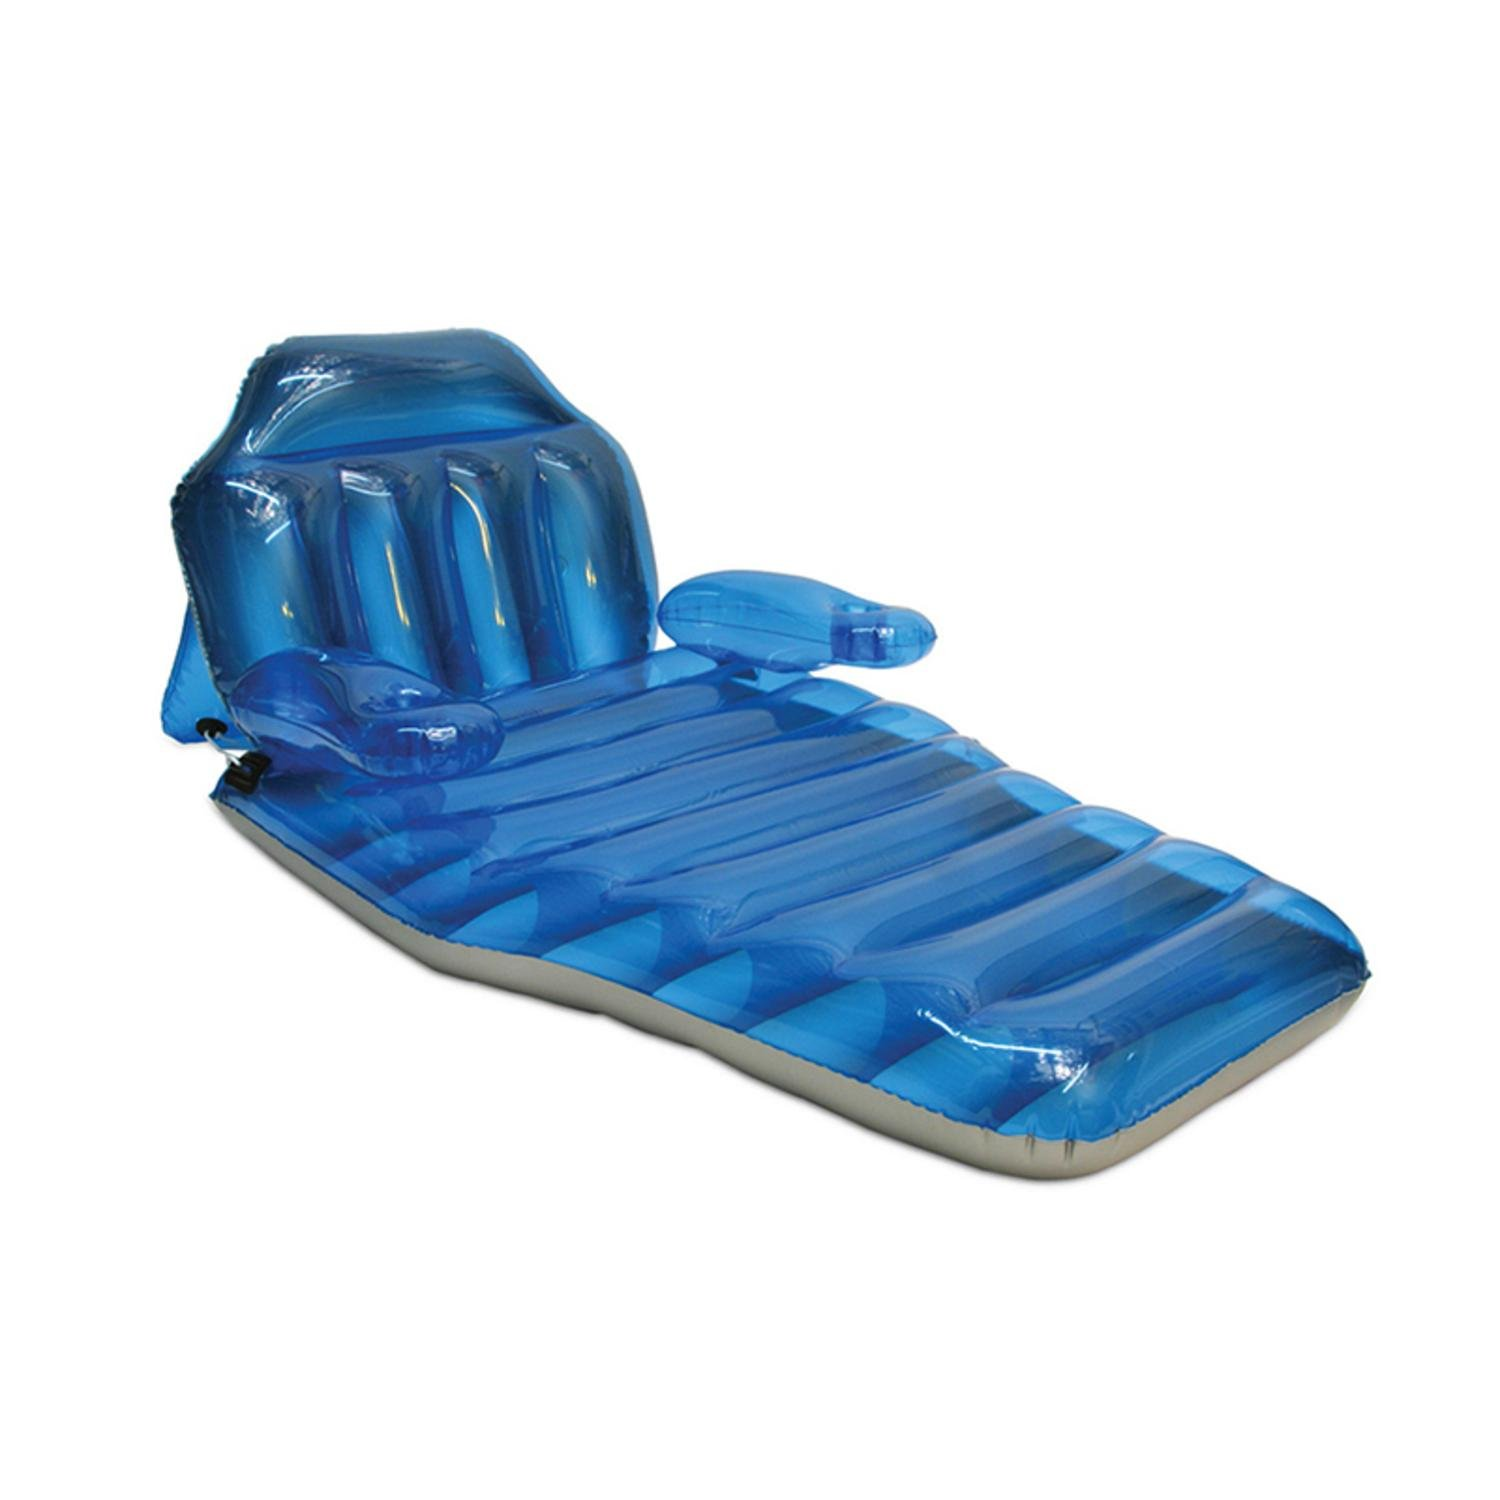 Inflatable Blue Adjustable Floating Swimming Pool Lounger, 80-Inch